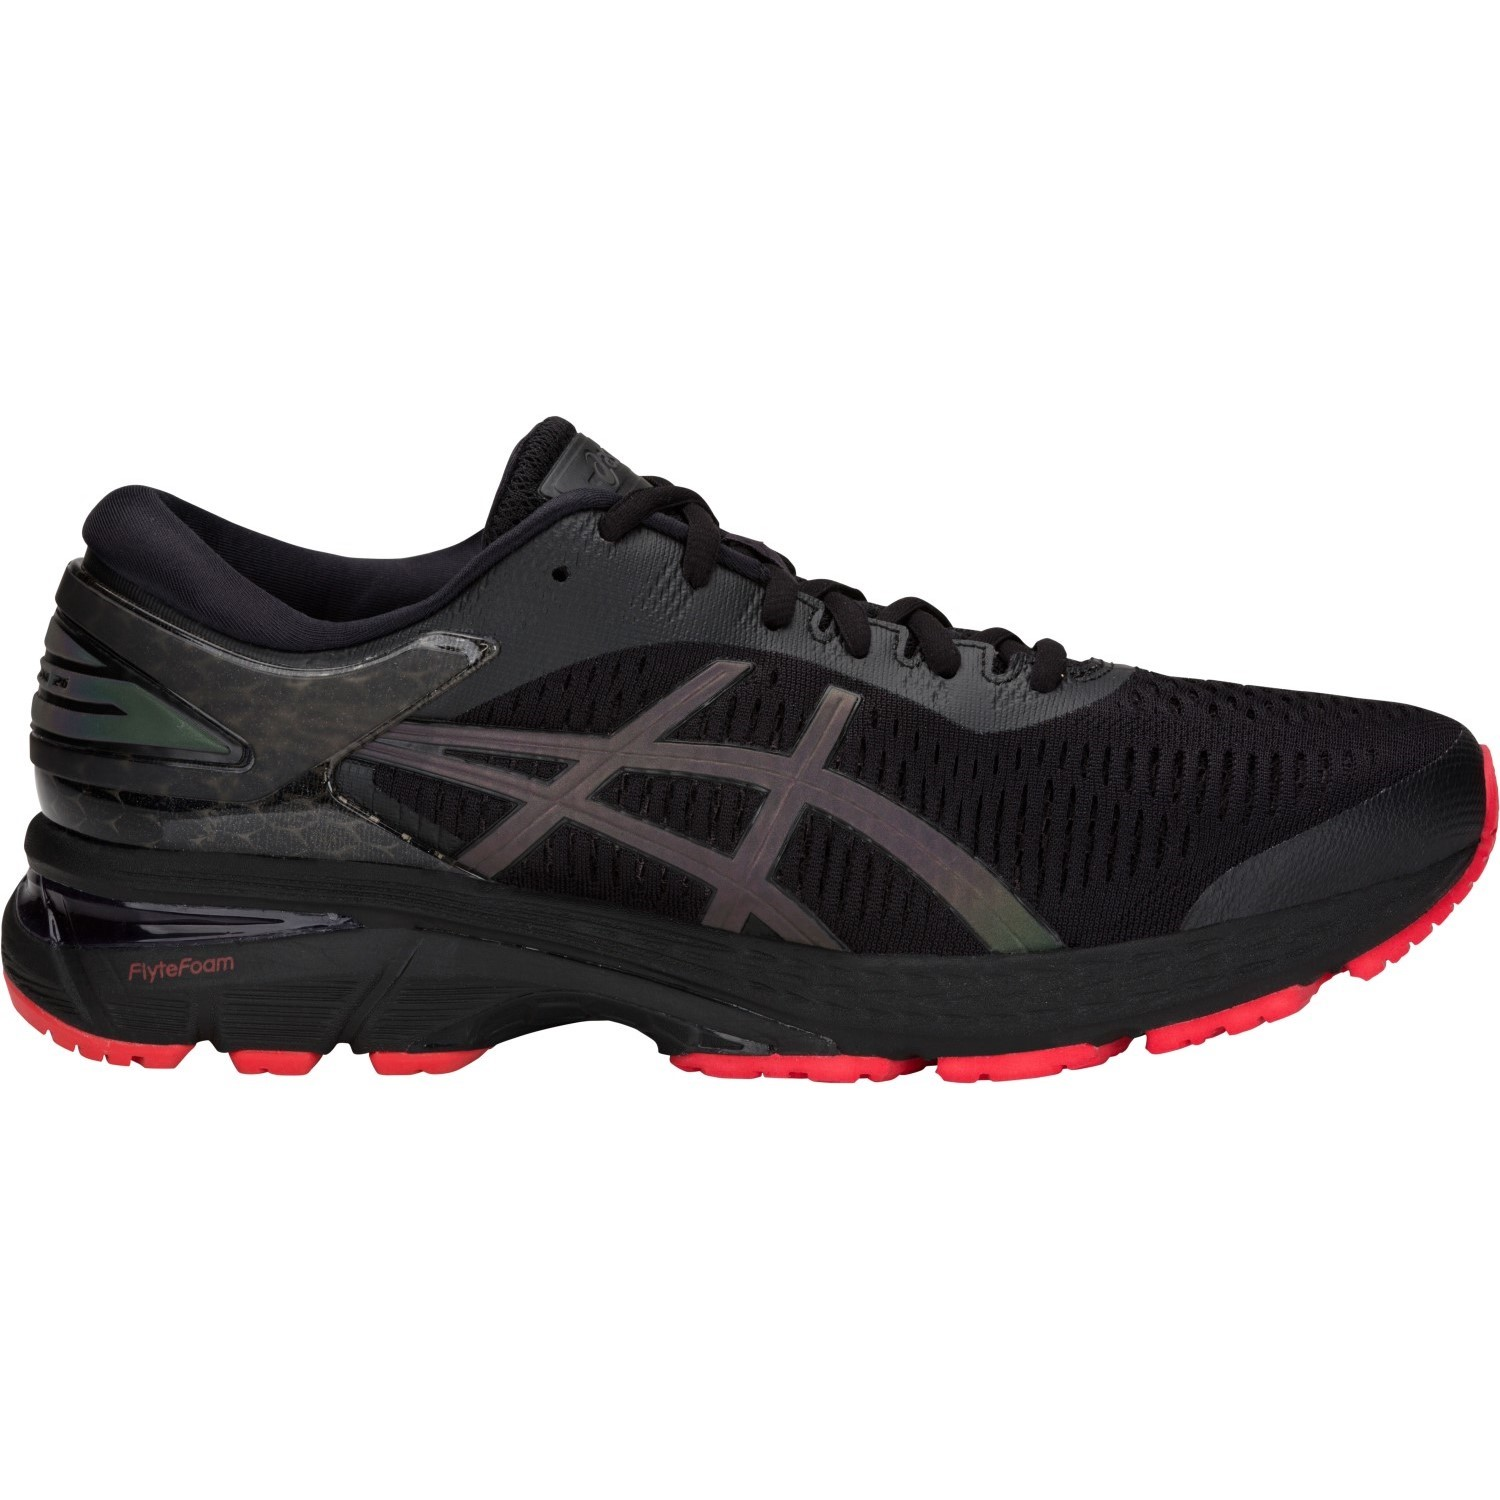 eda879c24d4 Asics Gel Kayano 25 Lite-Show - Mens Running Shoes - Black Red ...